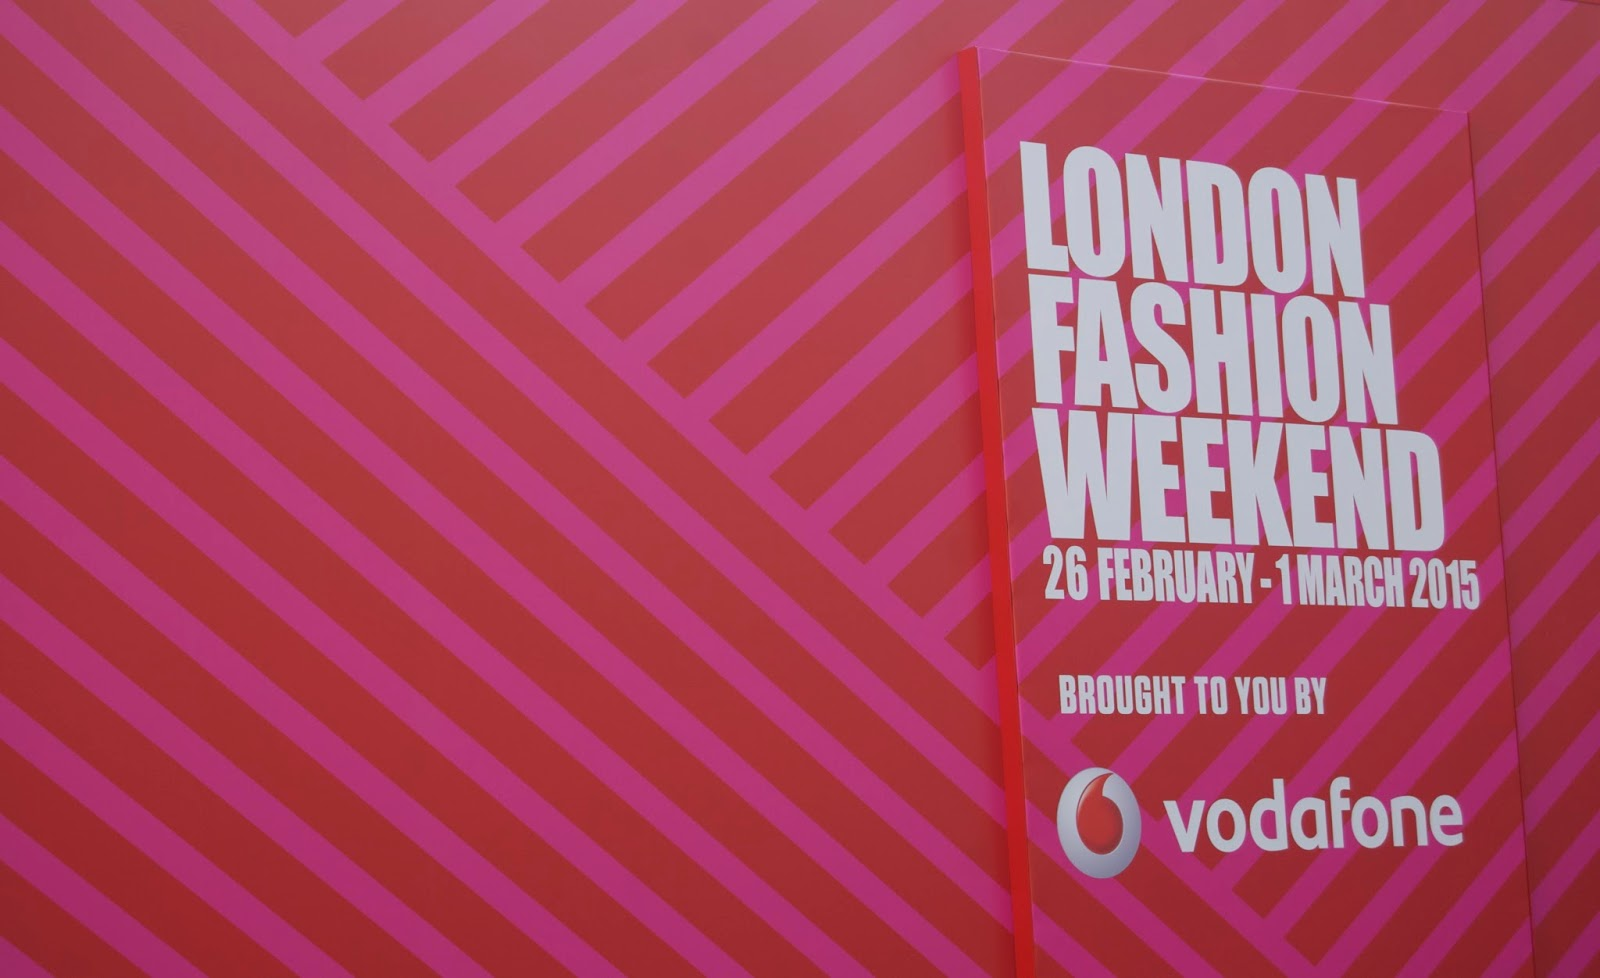 London Fashion Weekend with New Look